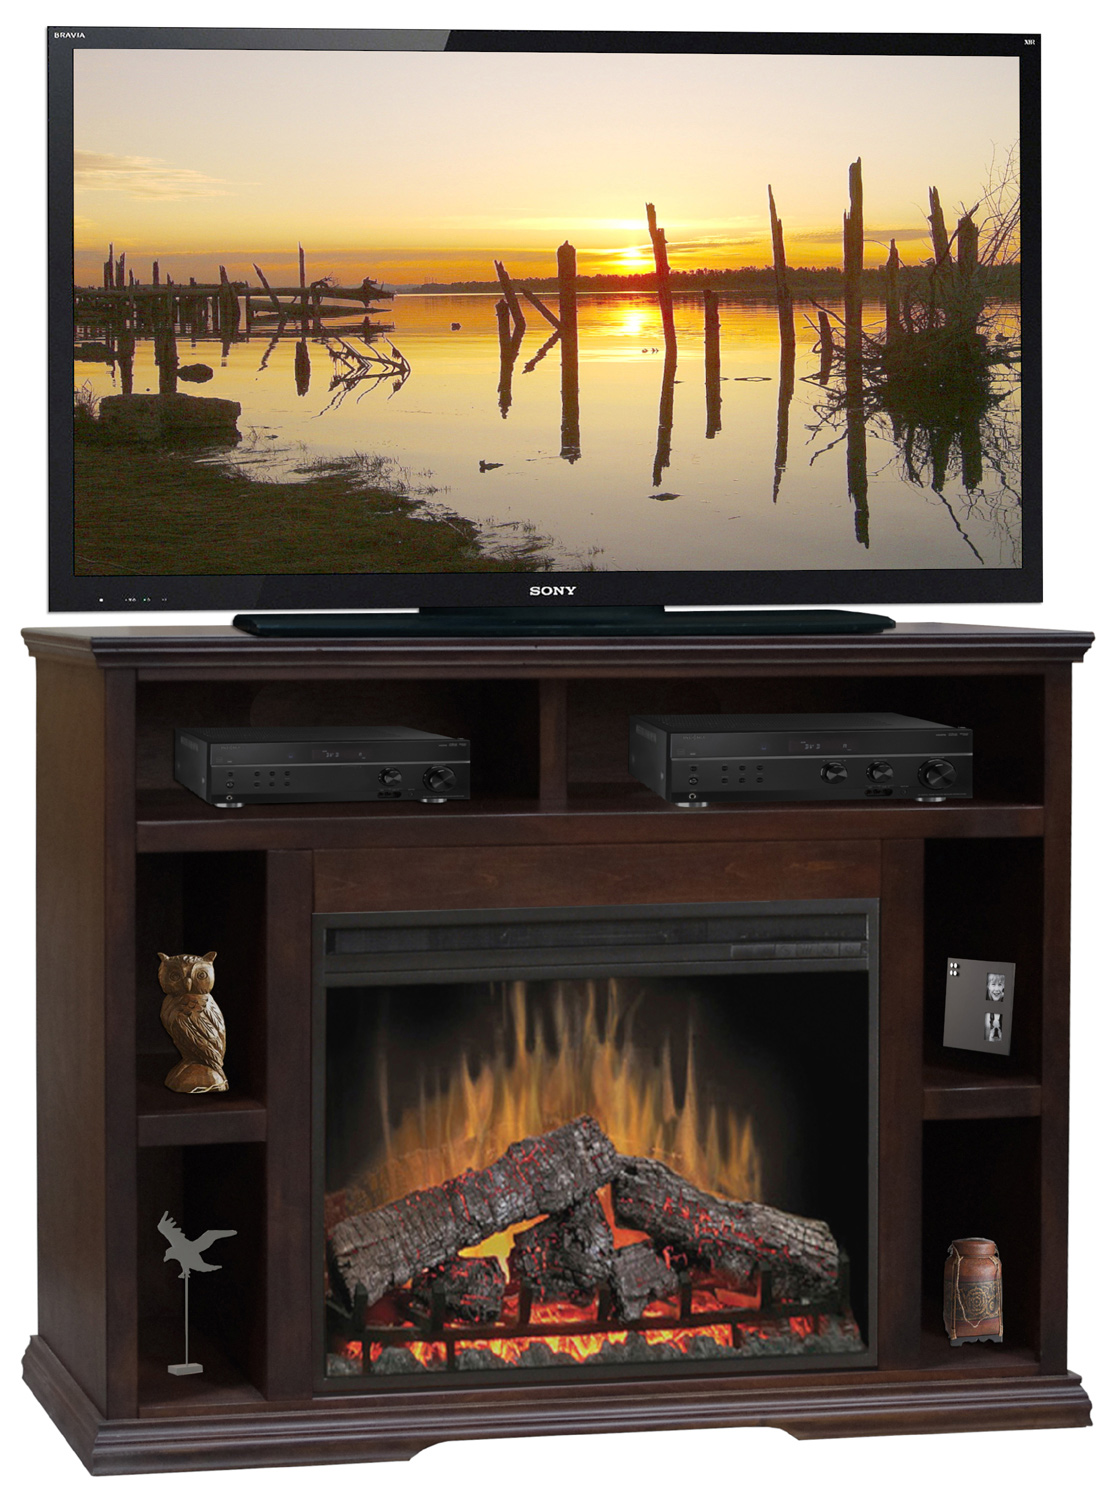 electric fireplace nebraska furniture mart on ashton place 49 fireplace console legends home gallery stores fireplace console dining room table set minimalist living room pinterest